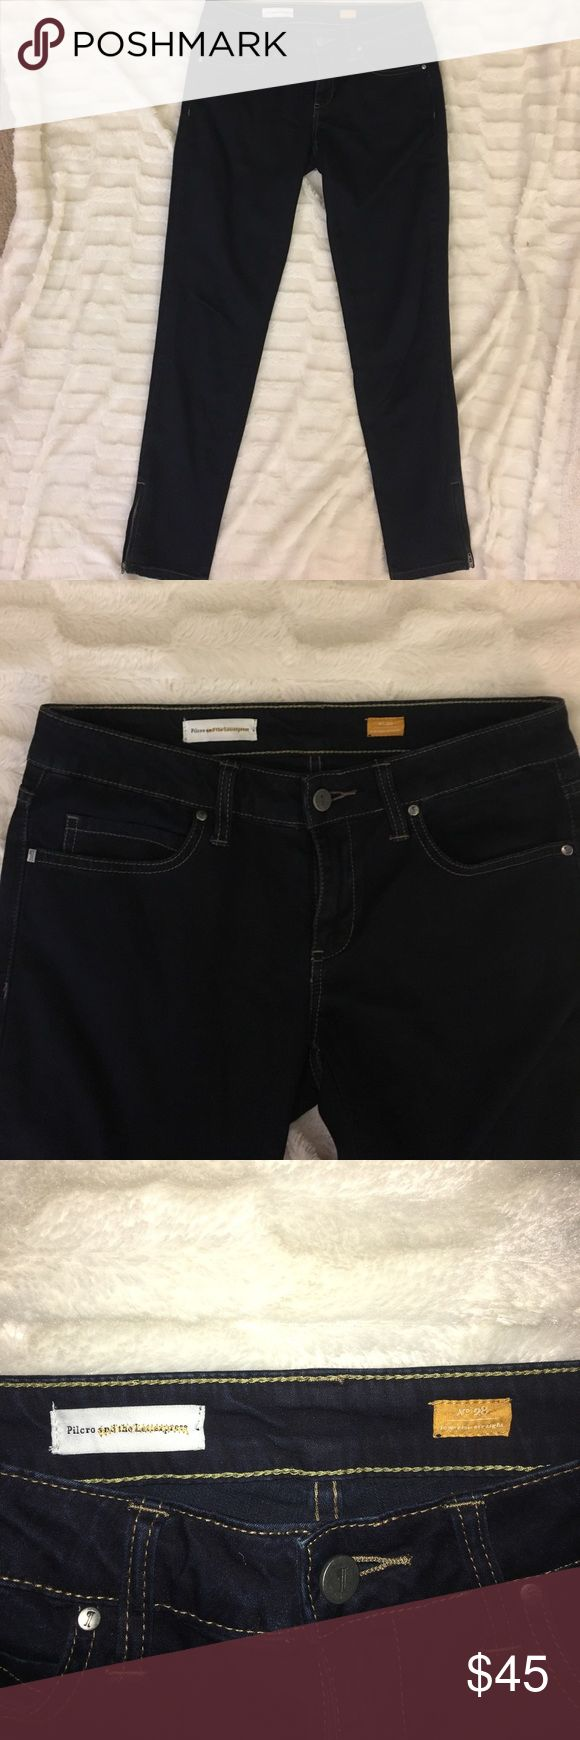 Pilcro and the Letterpress 28 6 low rise straight Jeans are in perfect condition!!! Anthropologie brand! High end and high quality Anthropologie Jeans